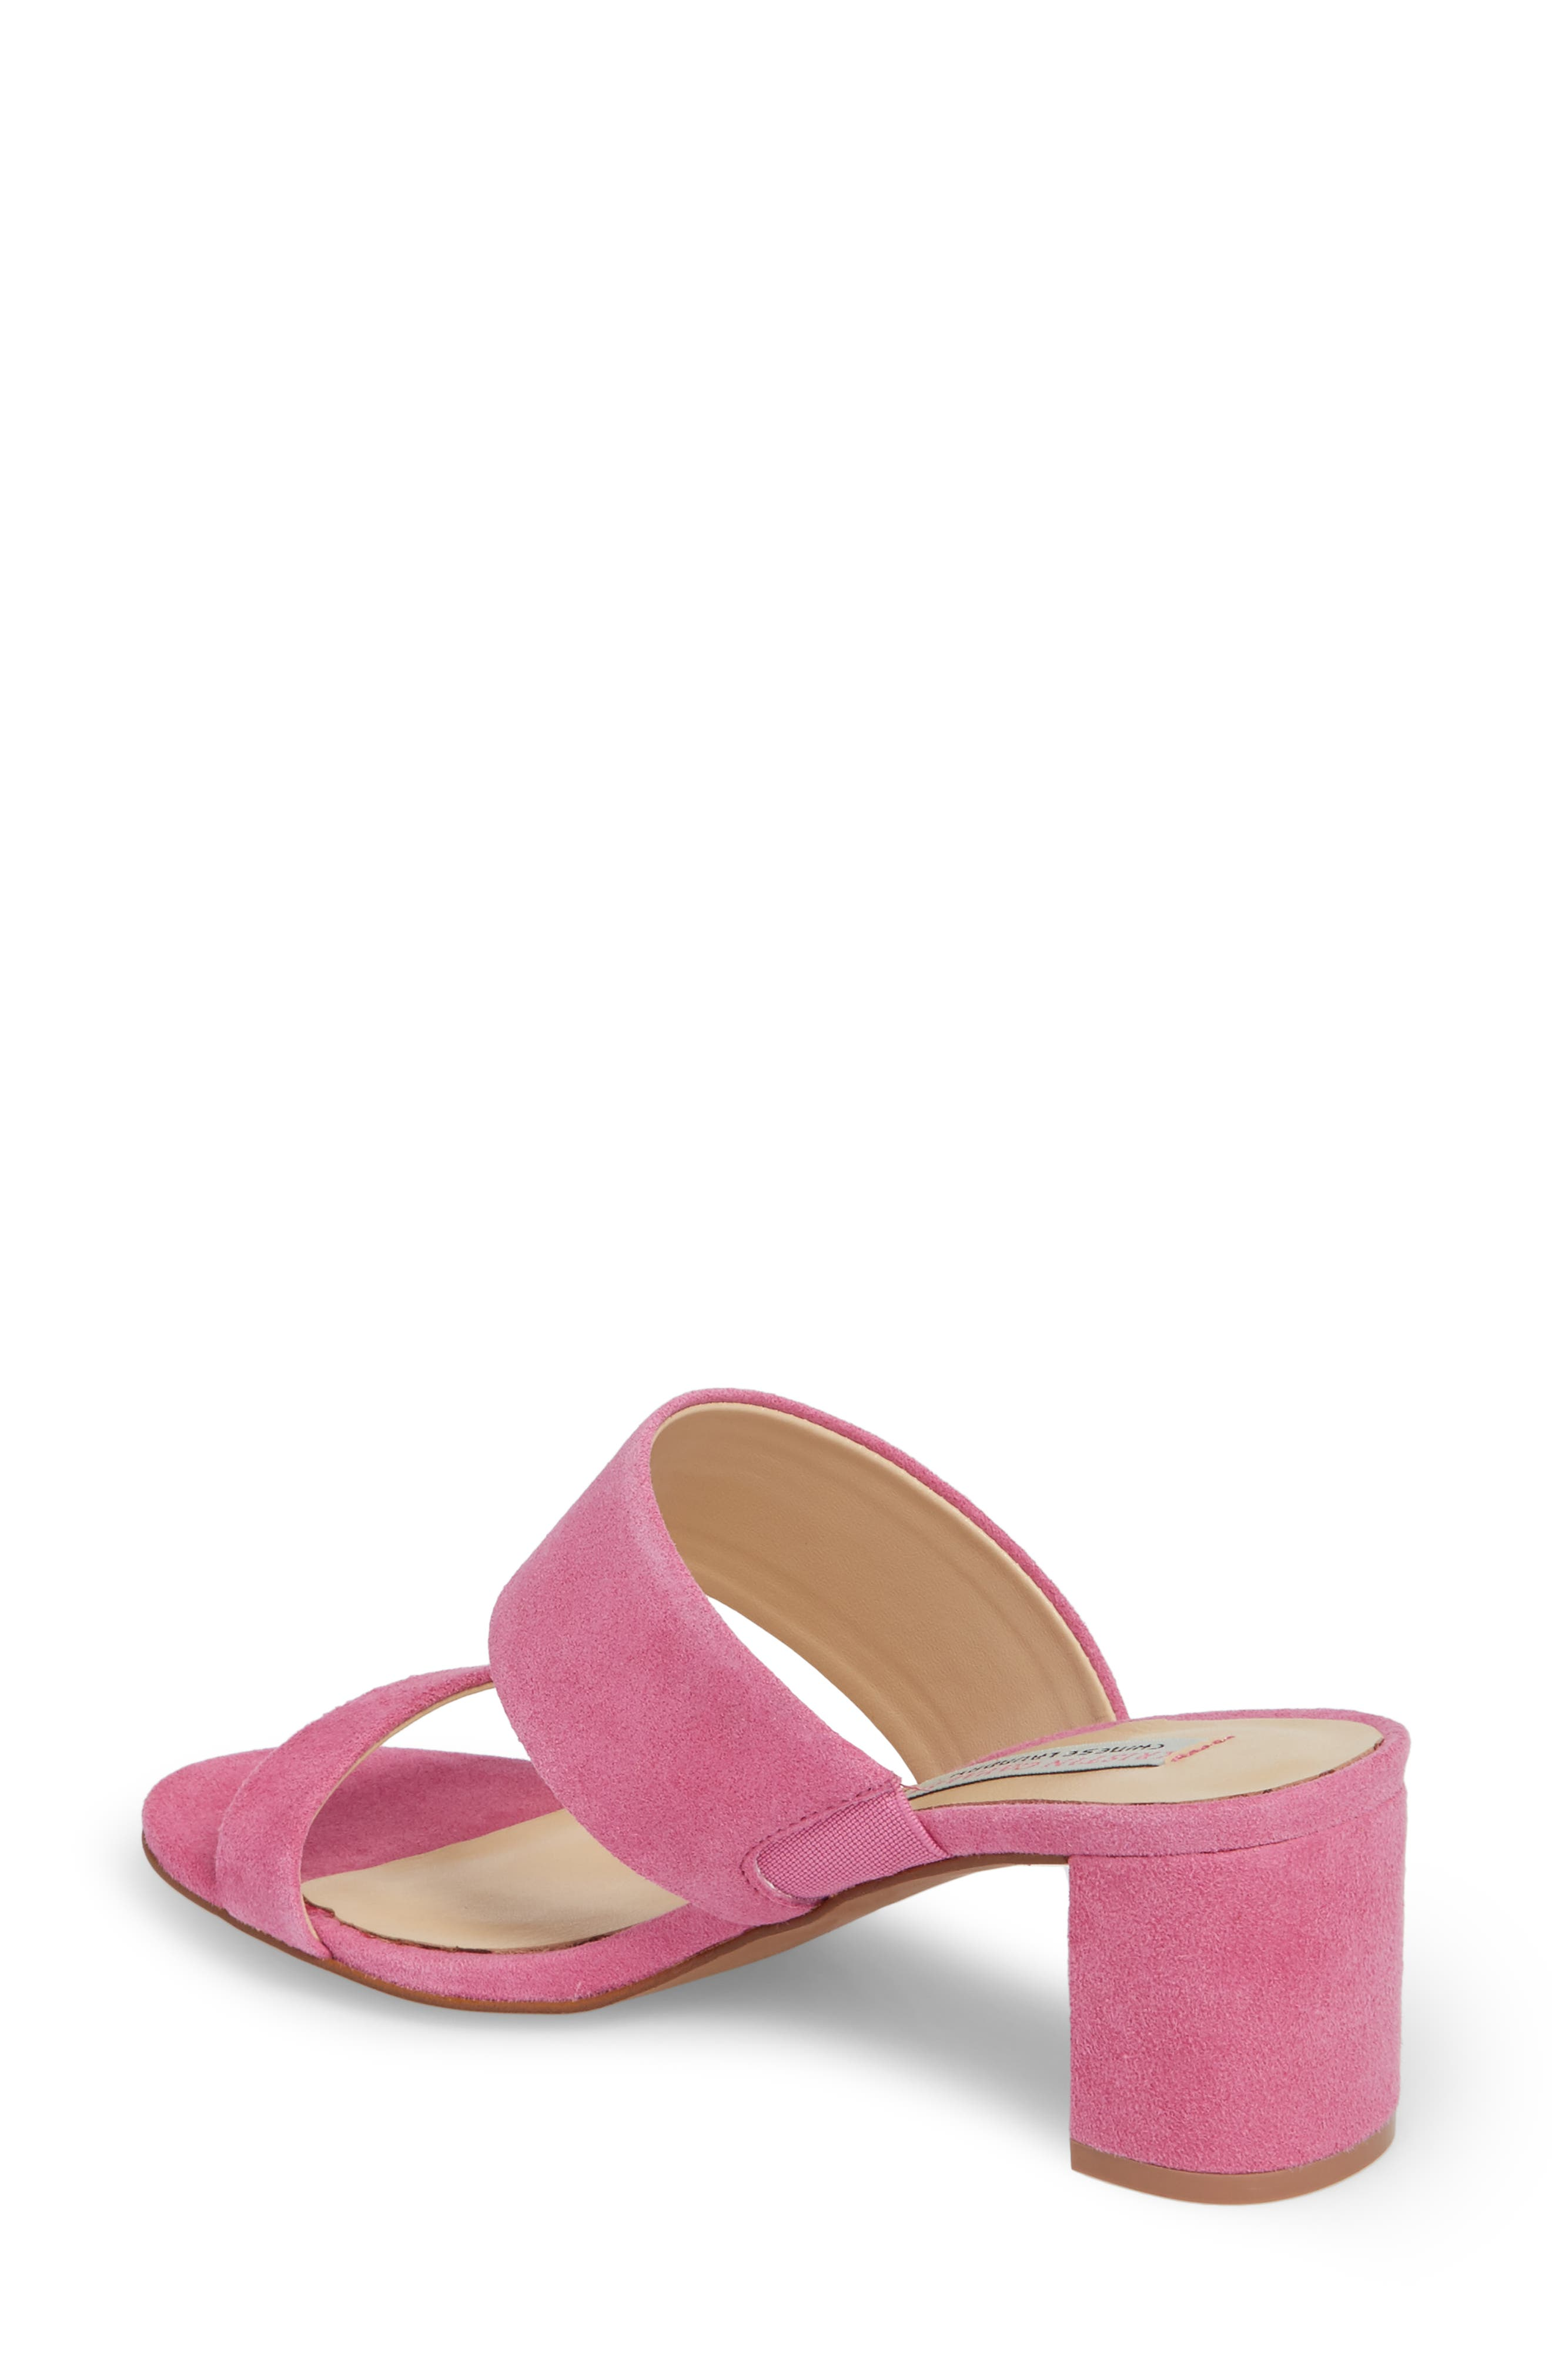 Lakeview Sandal,                             Alternate thumbnail 2, color,                             Fuchsia Suede